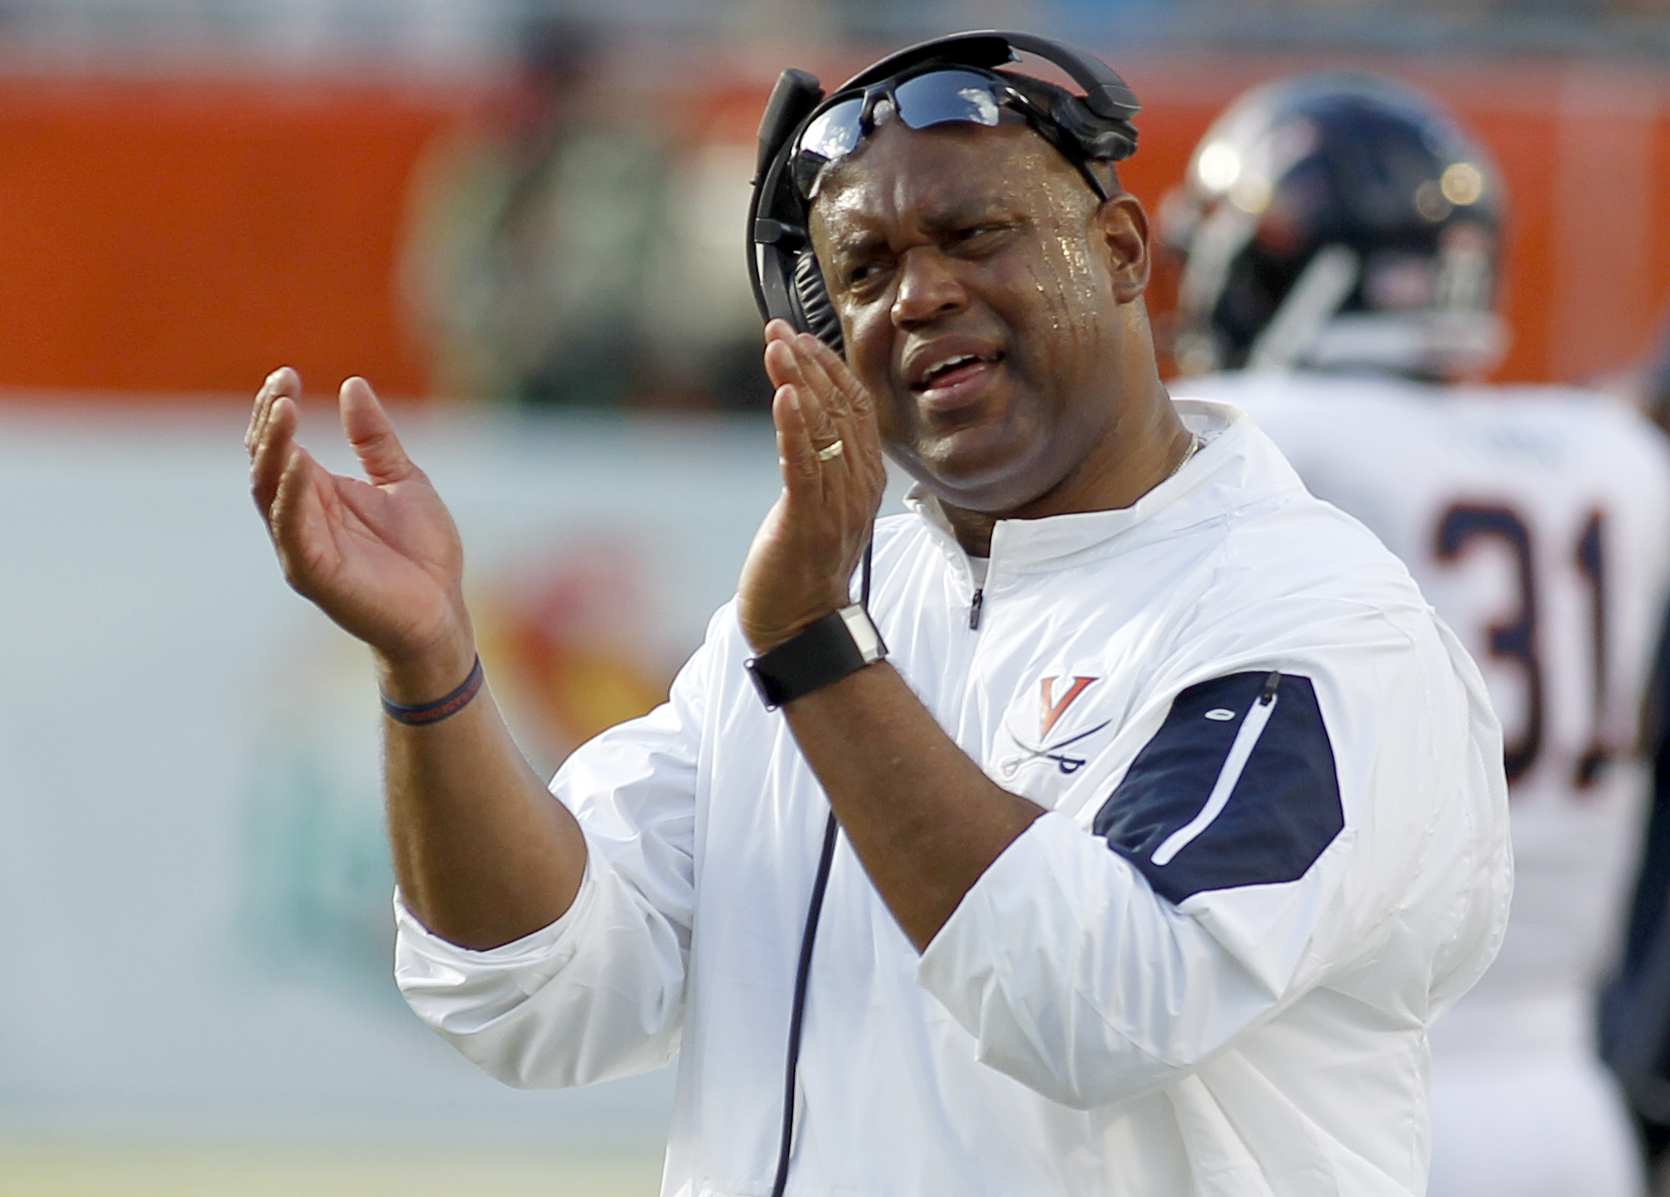 Virginia head coach Mike London reacts on the sidelines in the second quarter of play against Miami in an NCAA college football game, Saturday, Nov. 7, 2015, in Miami Gardens, Fla. (AP Photo/Joe Skipper)